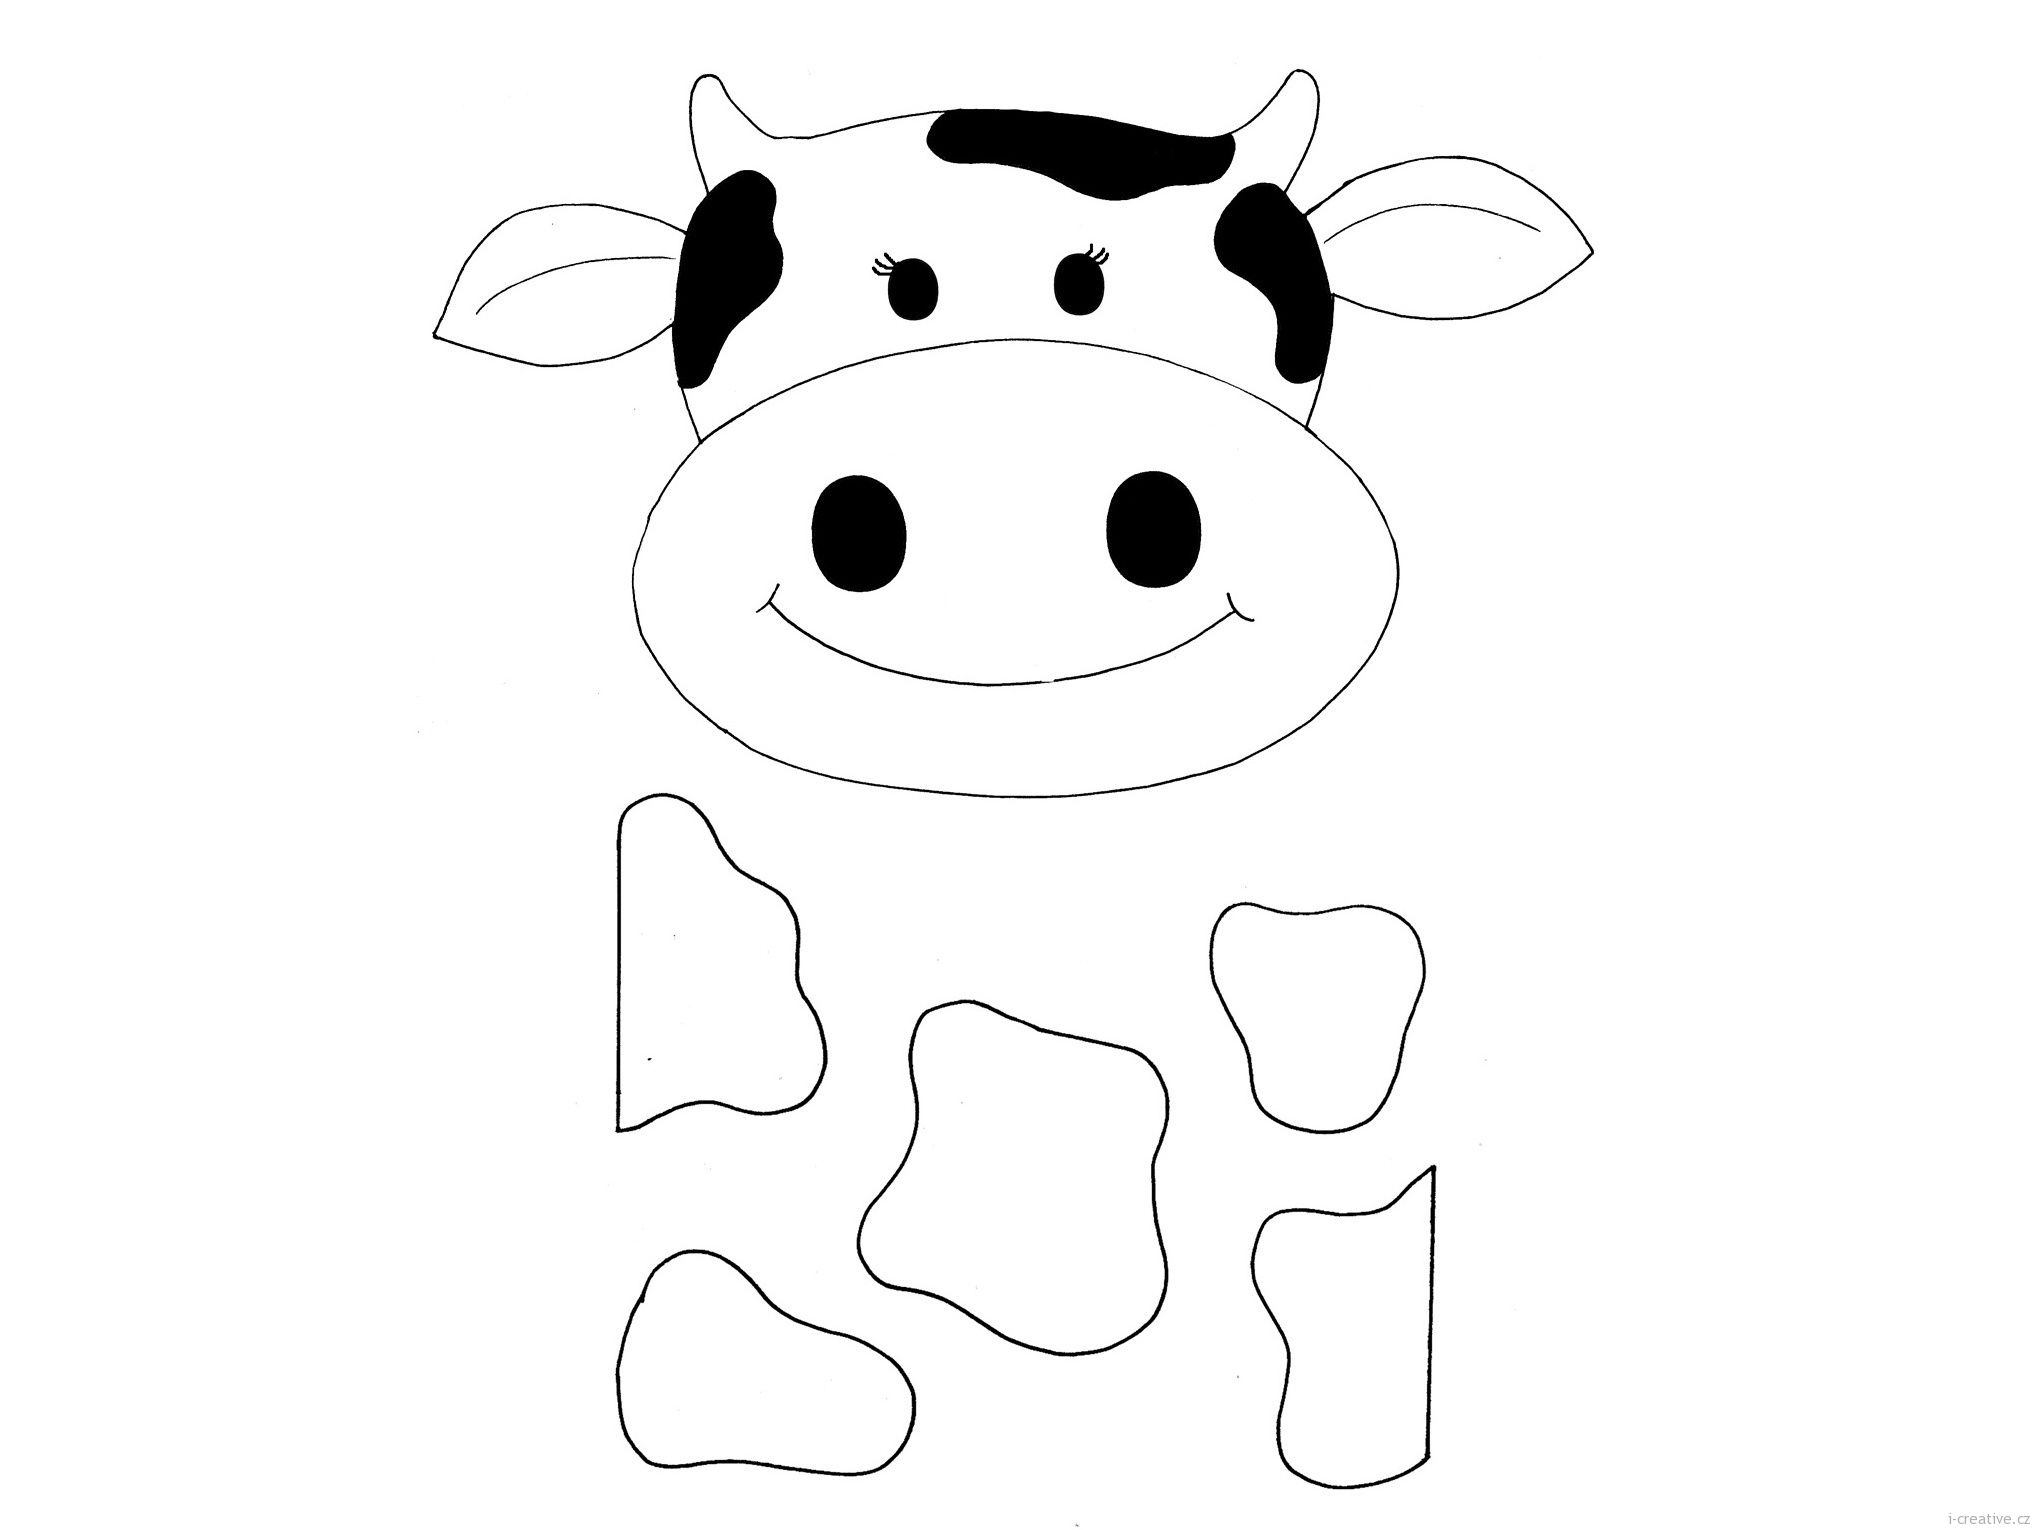 Cows coloring pages to download and print for free | Barnyard Round ...